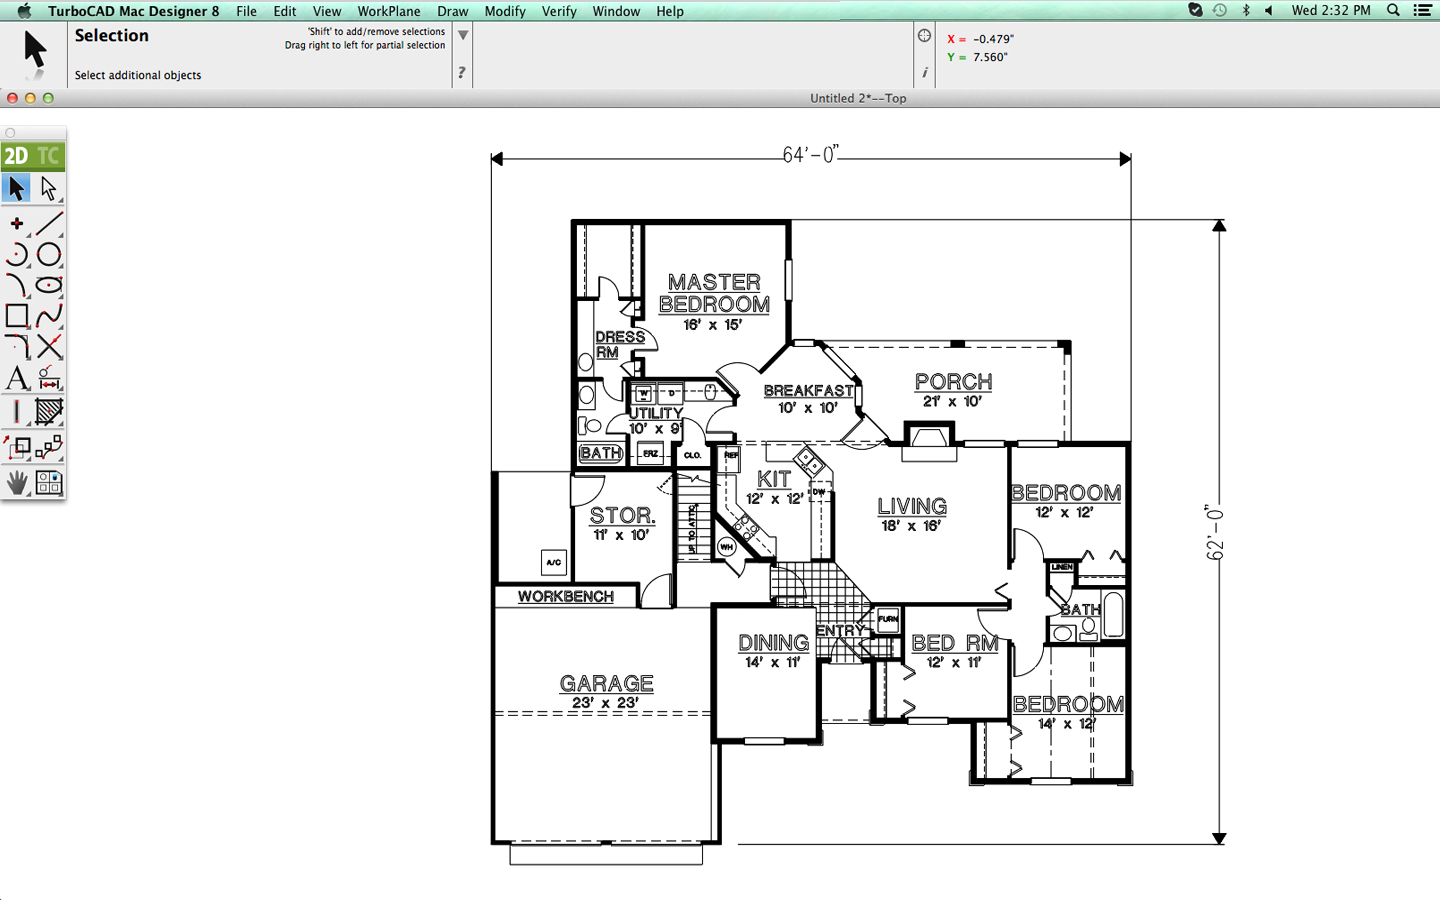 Turbocad Kitchen Design